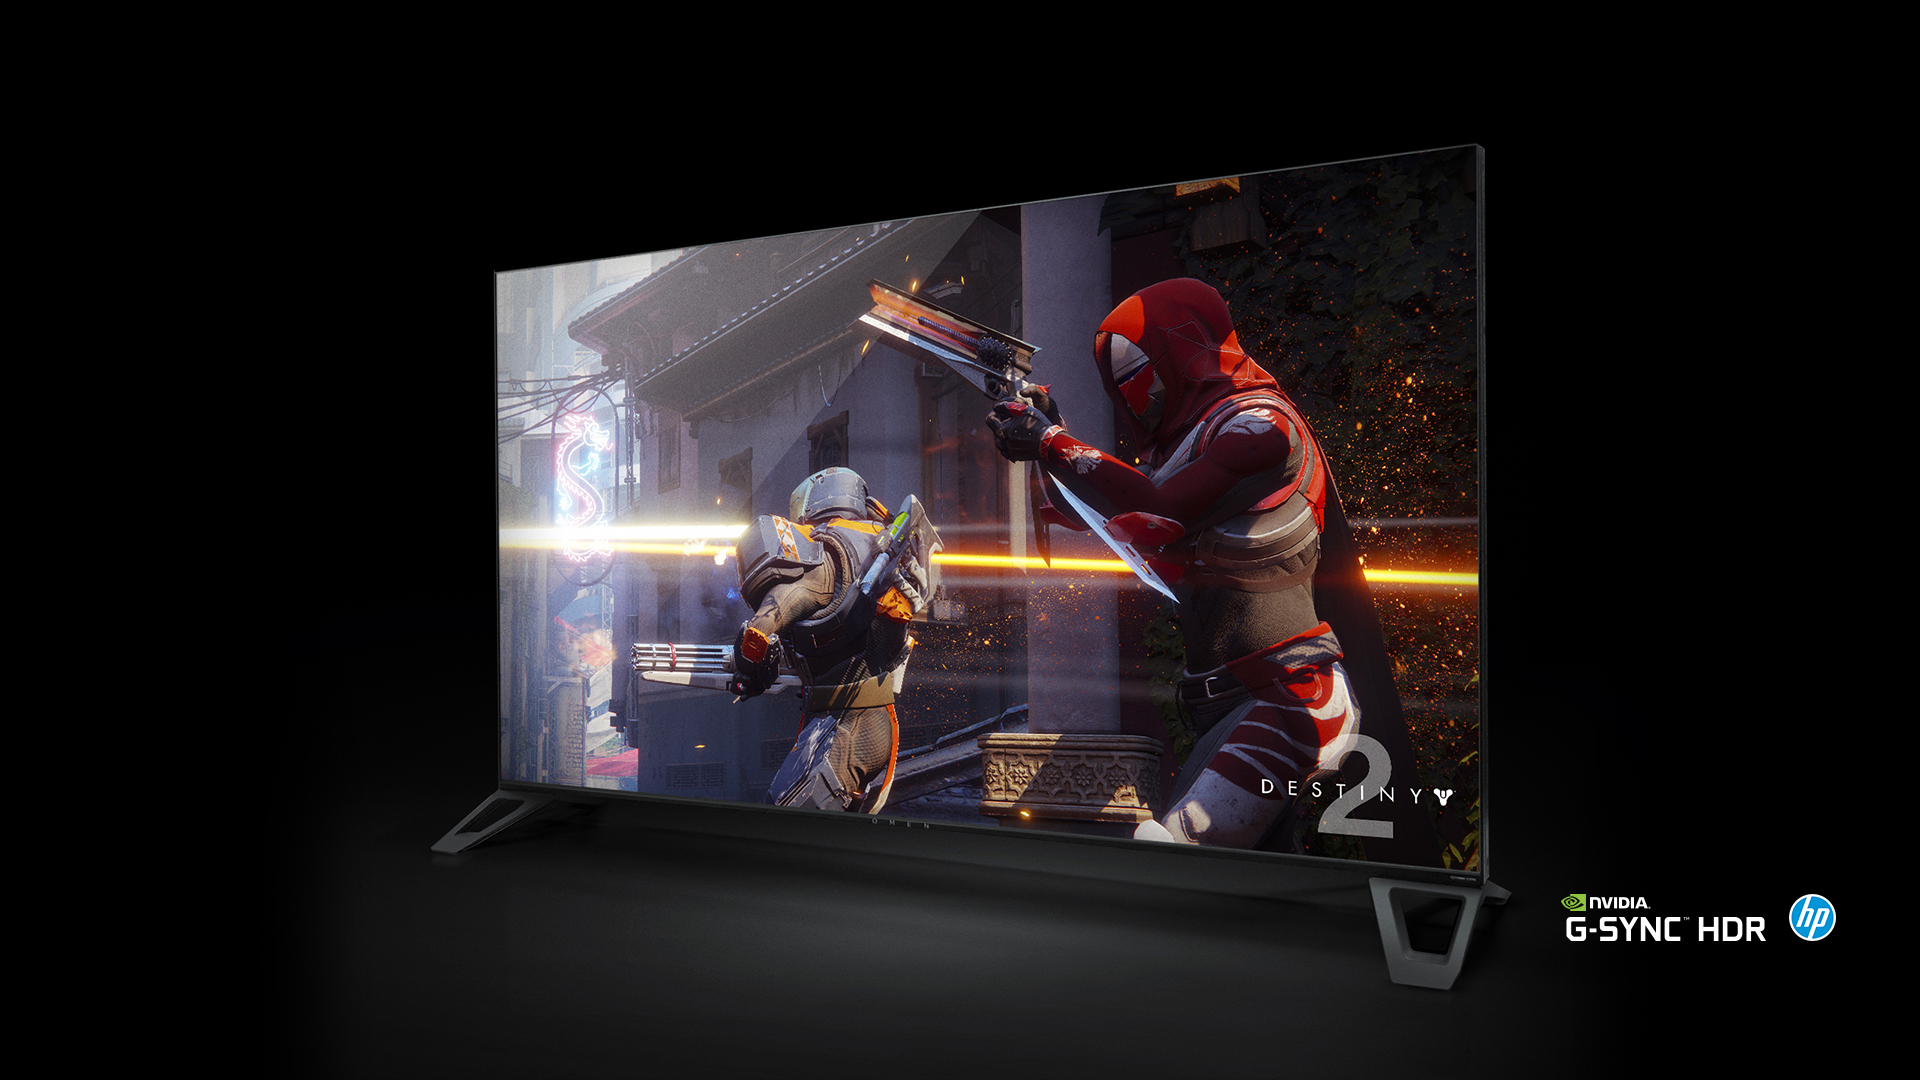 Nvidia Is Creating 65 Inch 4k Hdr Gaming Displays With